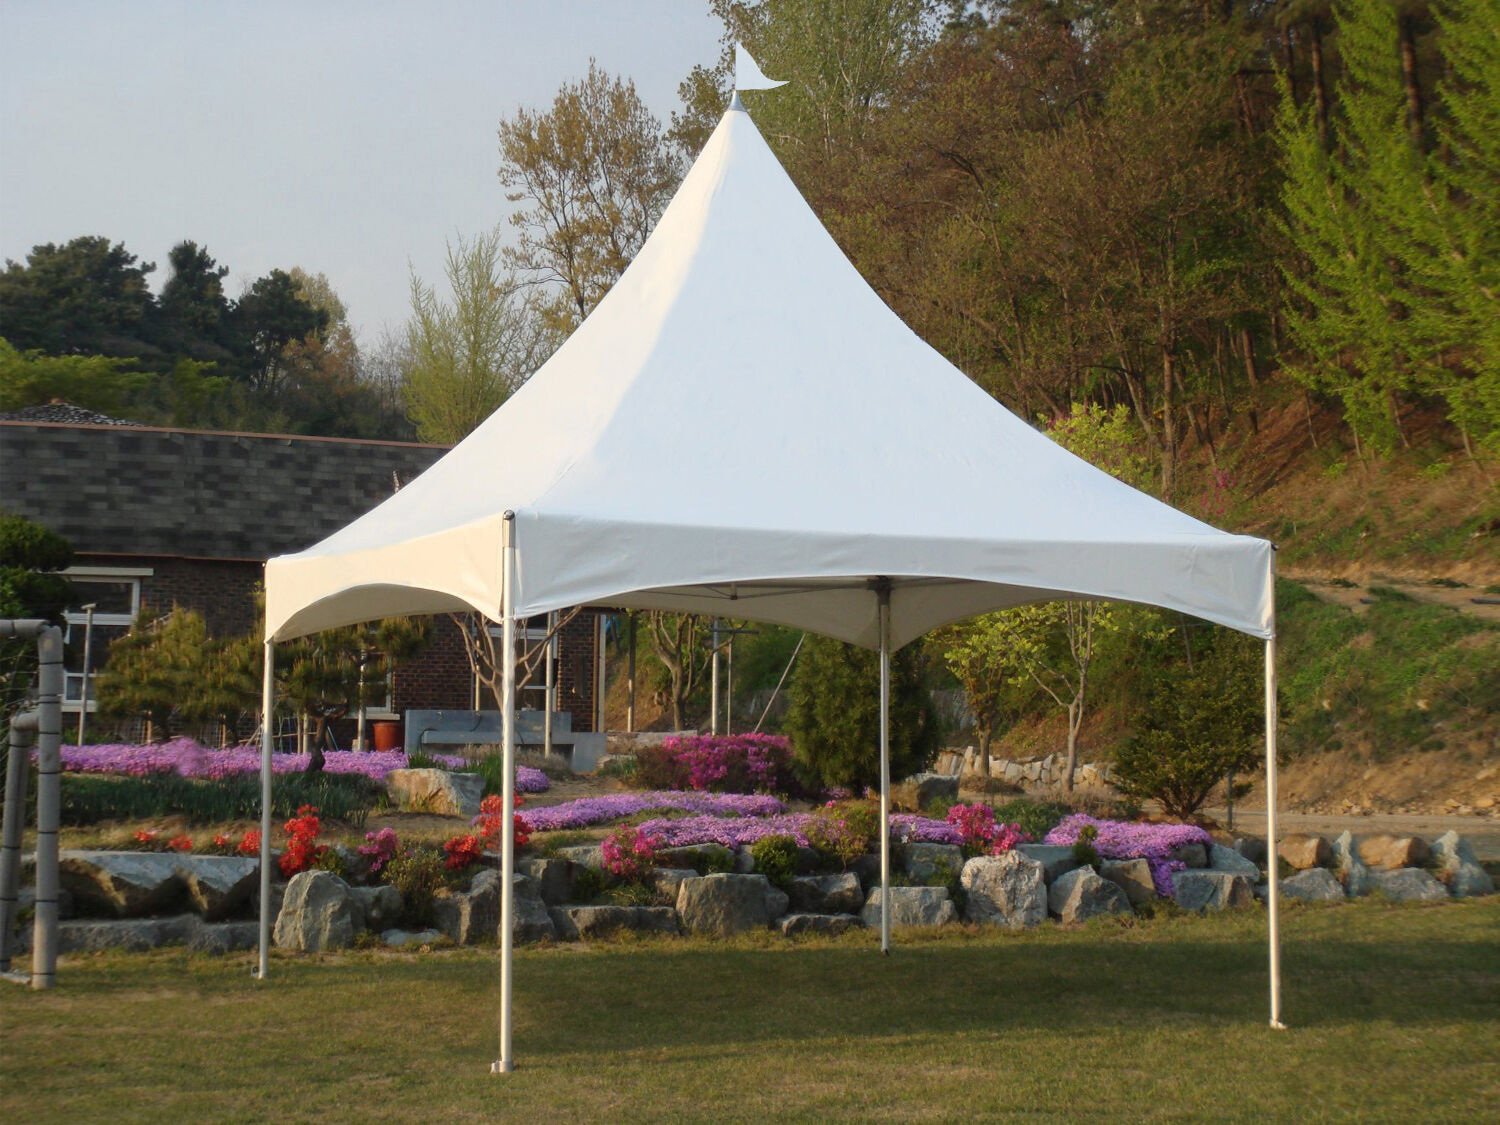 Commercial High Peak Marquee Tent 10x10 10x13 12x12 lasting use Canopy White